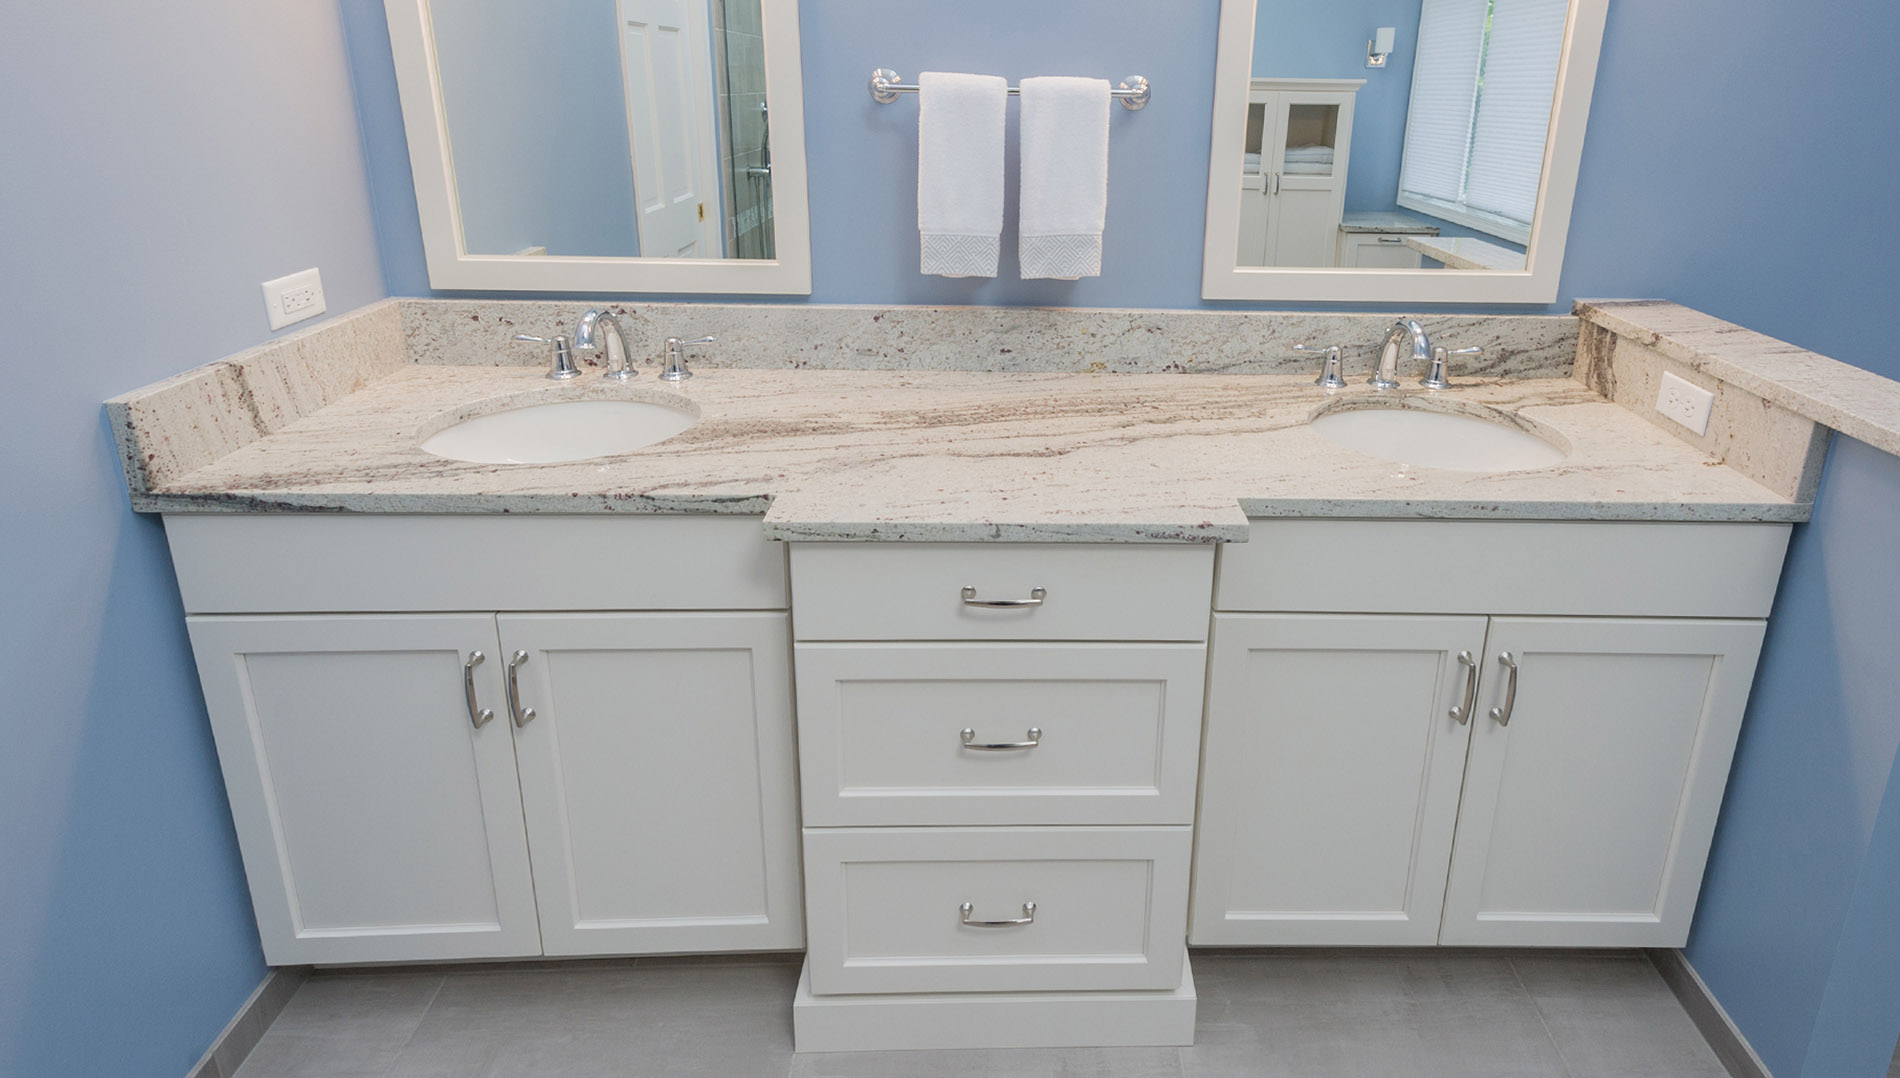 Bathroom Cabinets Naperville Aurora Wheaton Custom Bath - Bathroom vanities naperville